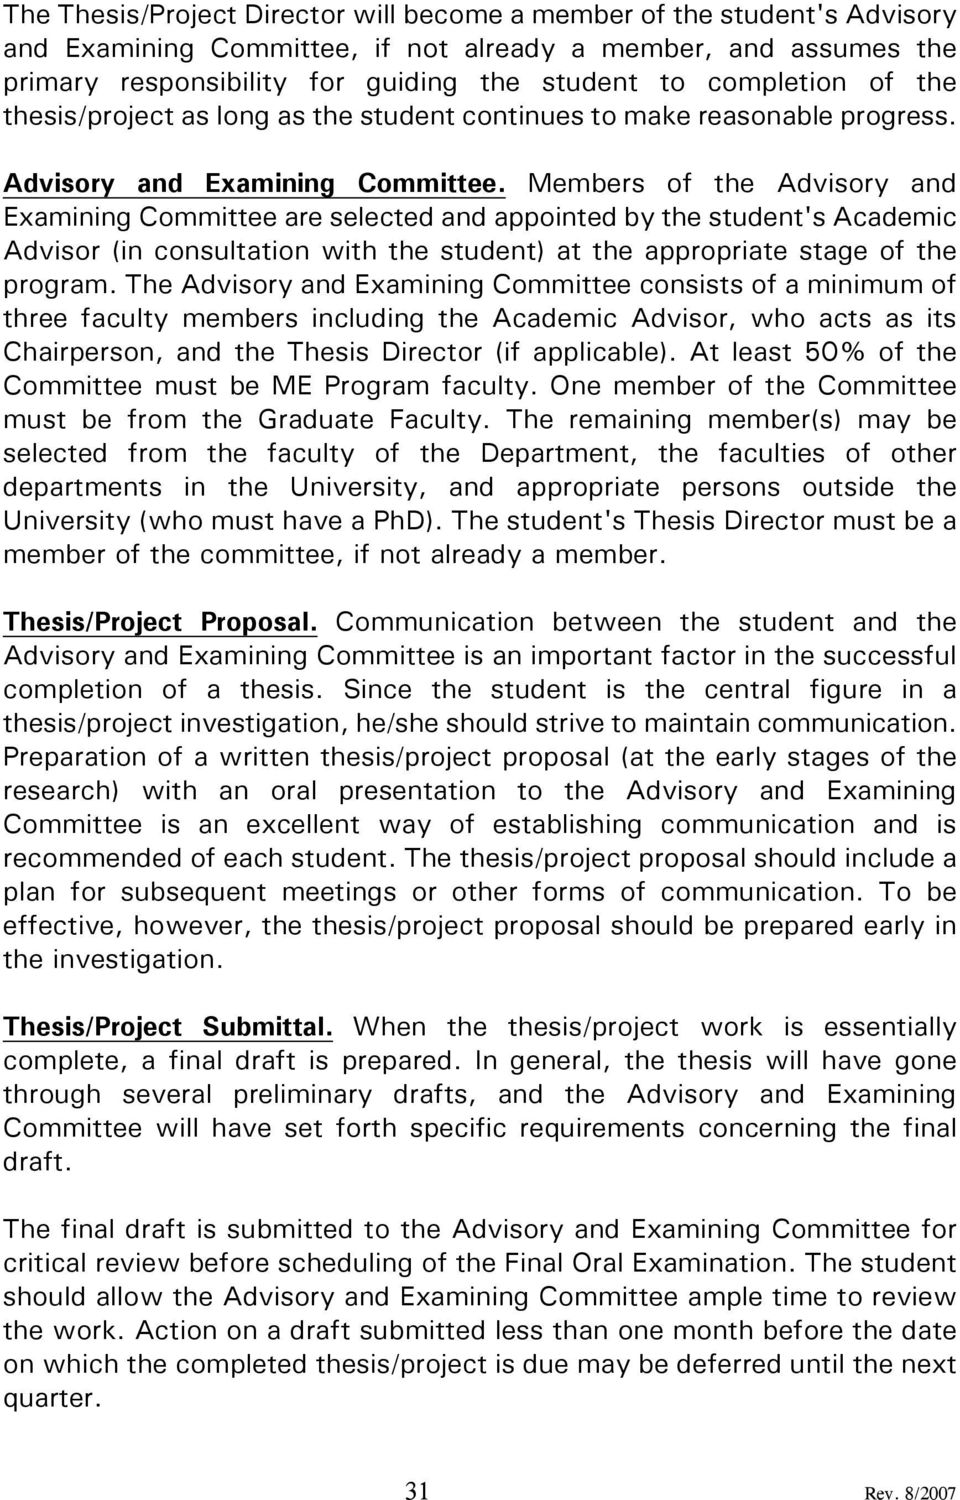 Members of the Advisory and Examining Committee are selected and appointed by the student's Academic Advisor (in consultation with the student) at the appropriate stage of the program.